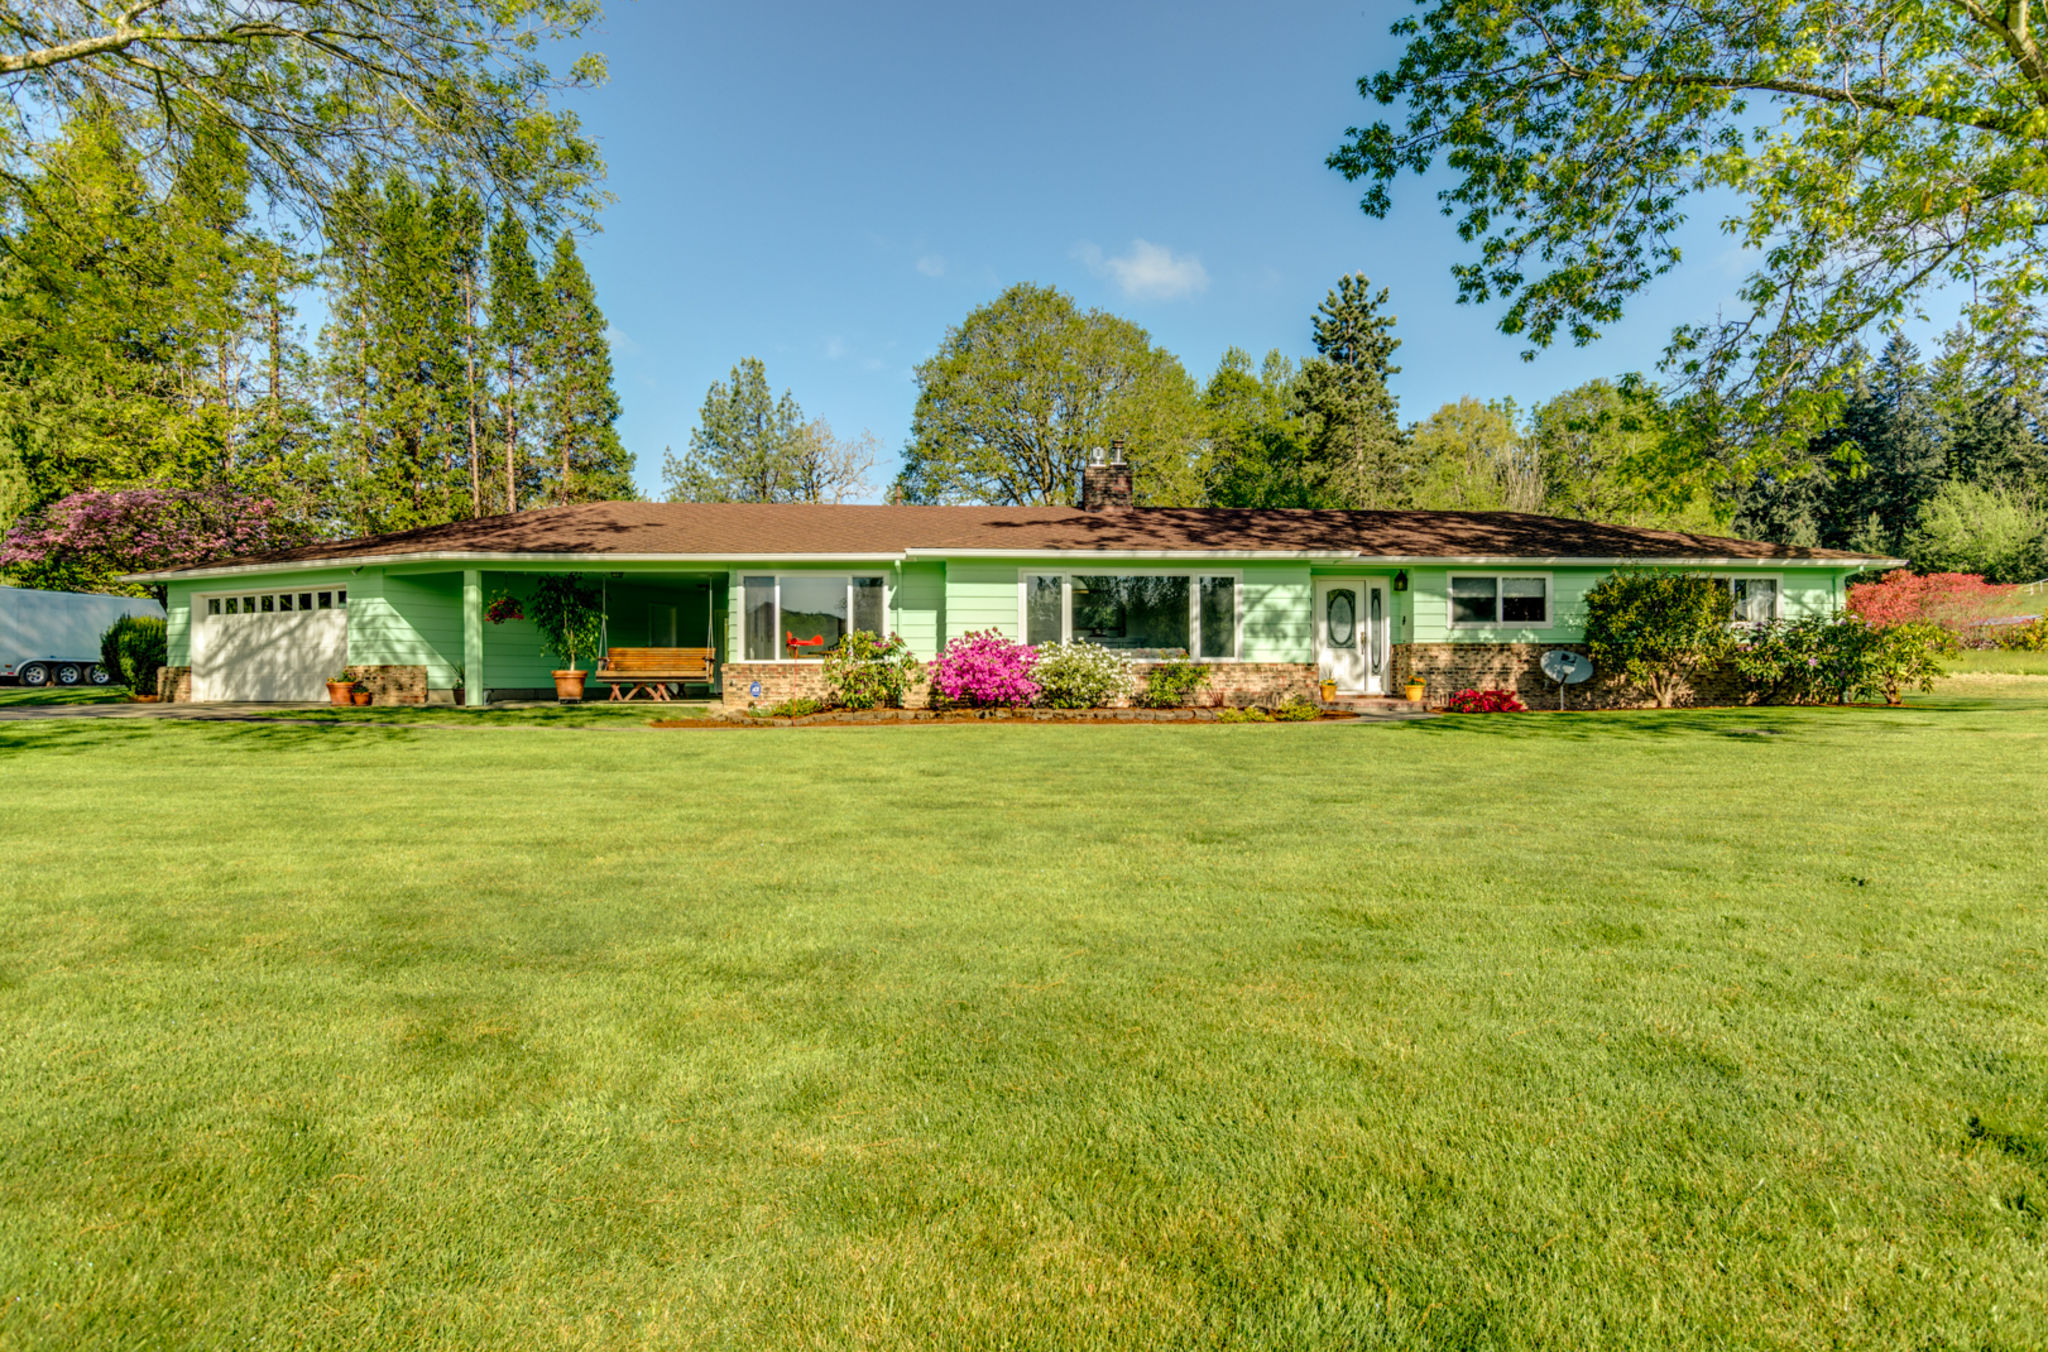 21185_nw_phillips_road__hillsboro_1_ipad_pro